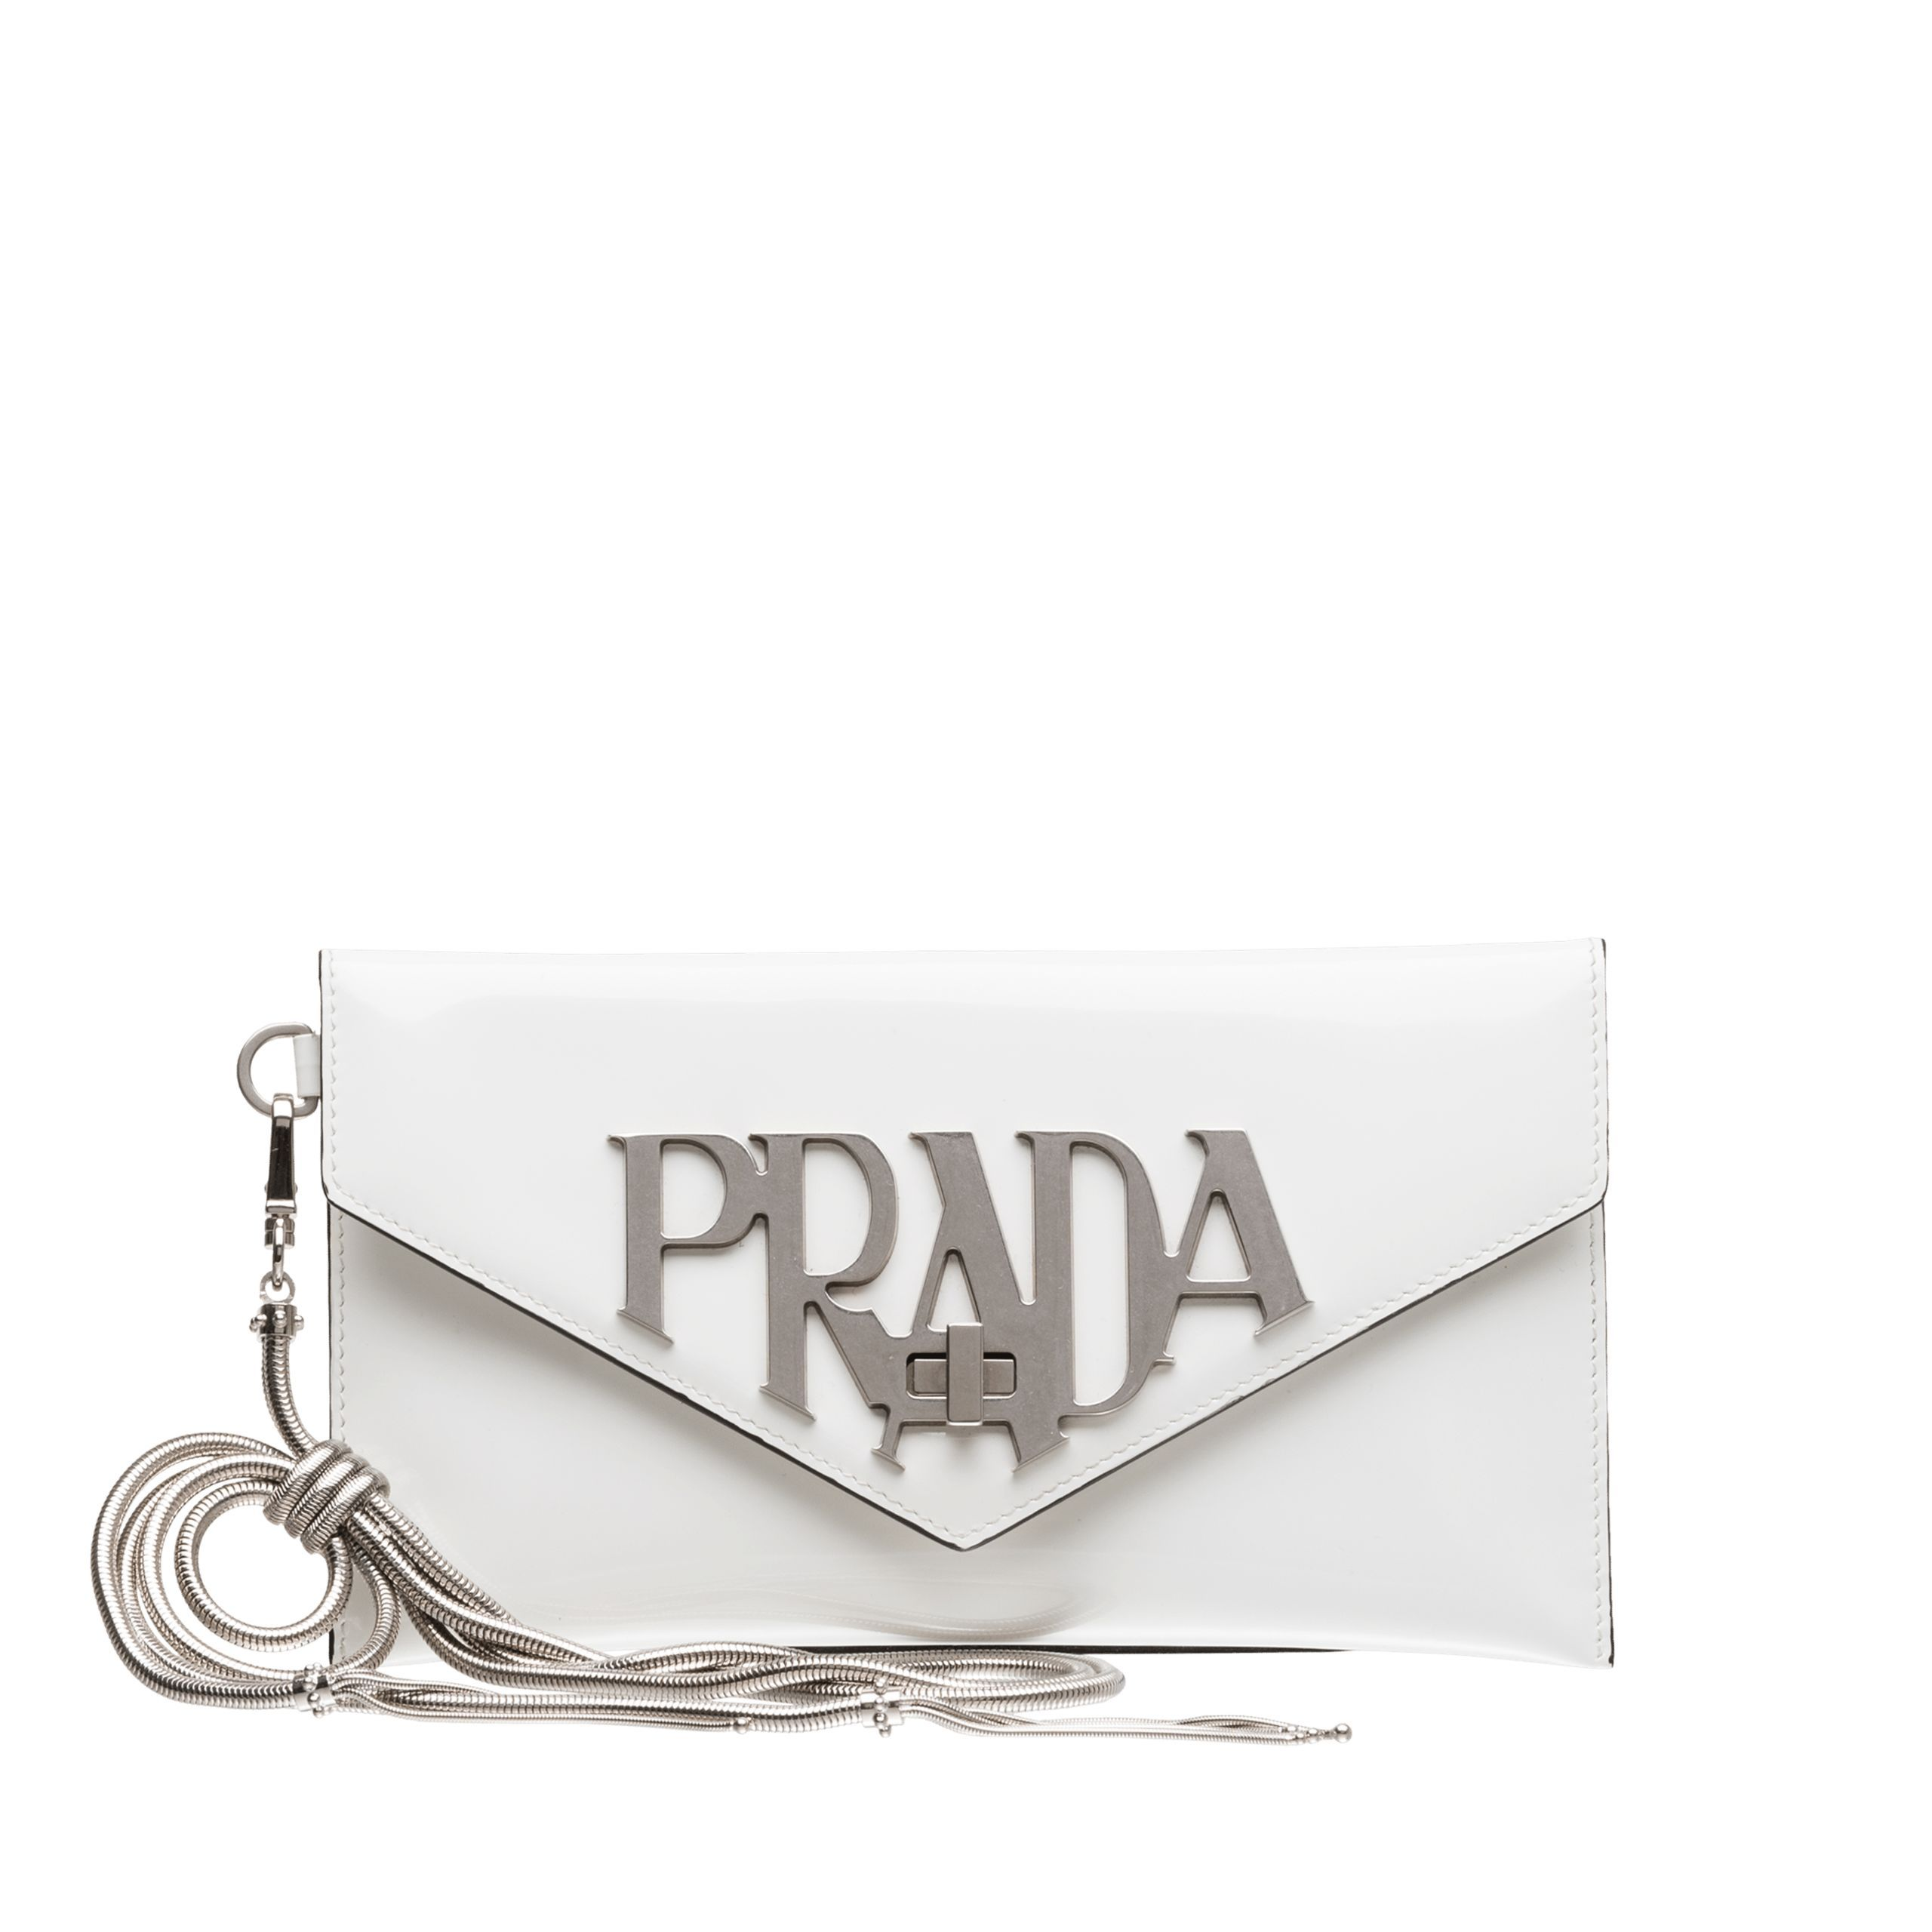 5764736afcb6 PRADA | Leather Clutch Bag | $920 | Elegant clutch bags in luminous brushed  leather with